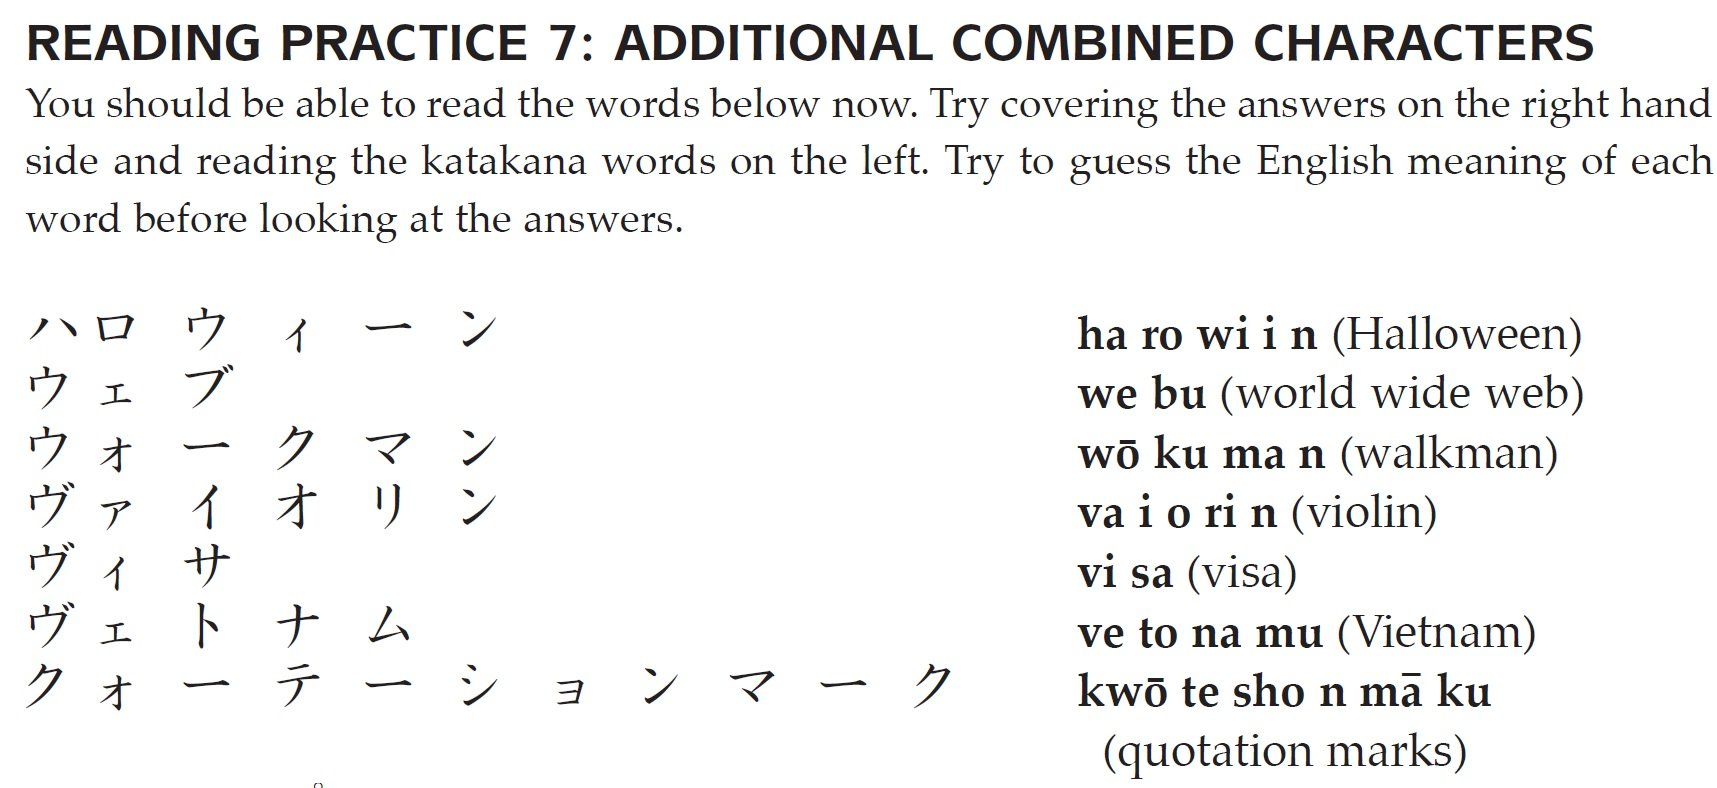 japanese writing systems Look for simple characters japanese writing has 3 main components: hiragana, katakana, and kanji hiragana and katakana are syllabic systems, while kanji are derived from chinese characters many hiragana characters are curvy, but do not have the neat round shapes of korean (eg さっか.